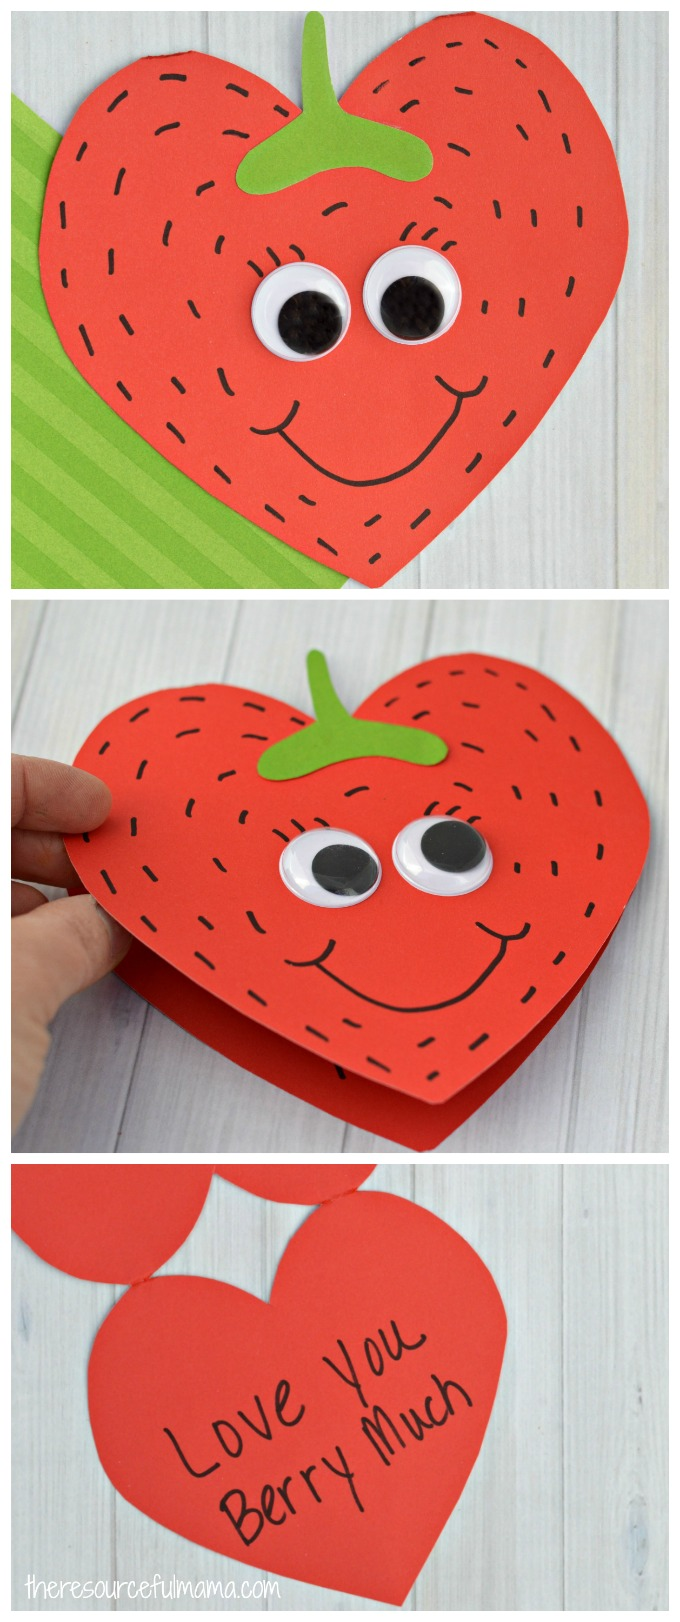 This Strawberry Valentine Day Card is a super sweet card kids can make this Valentine's Day for family, teachers, or friends.